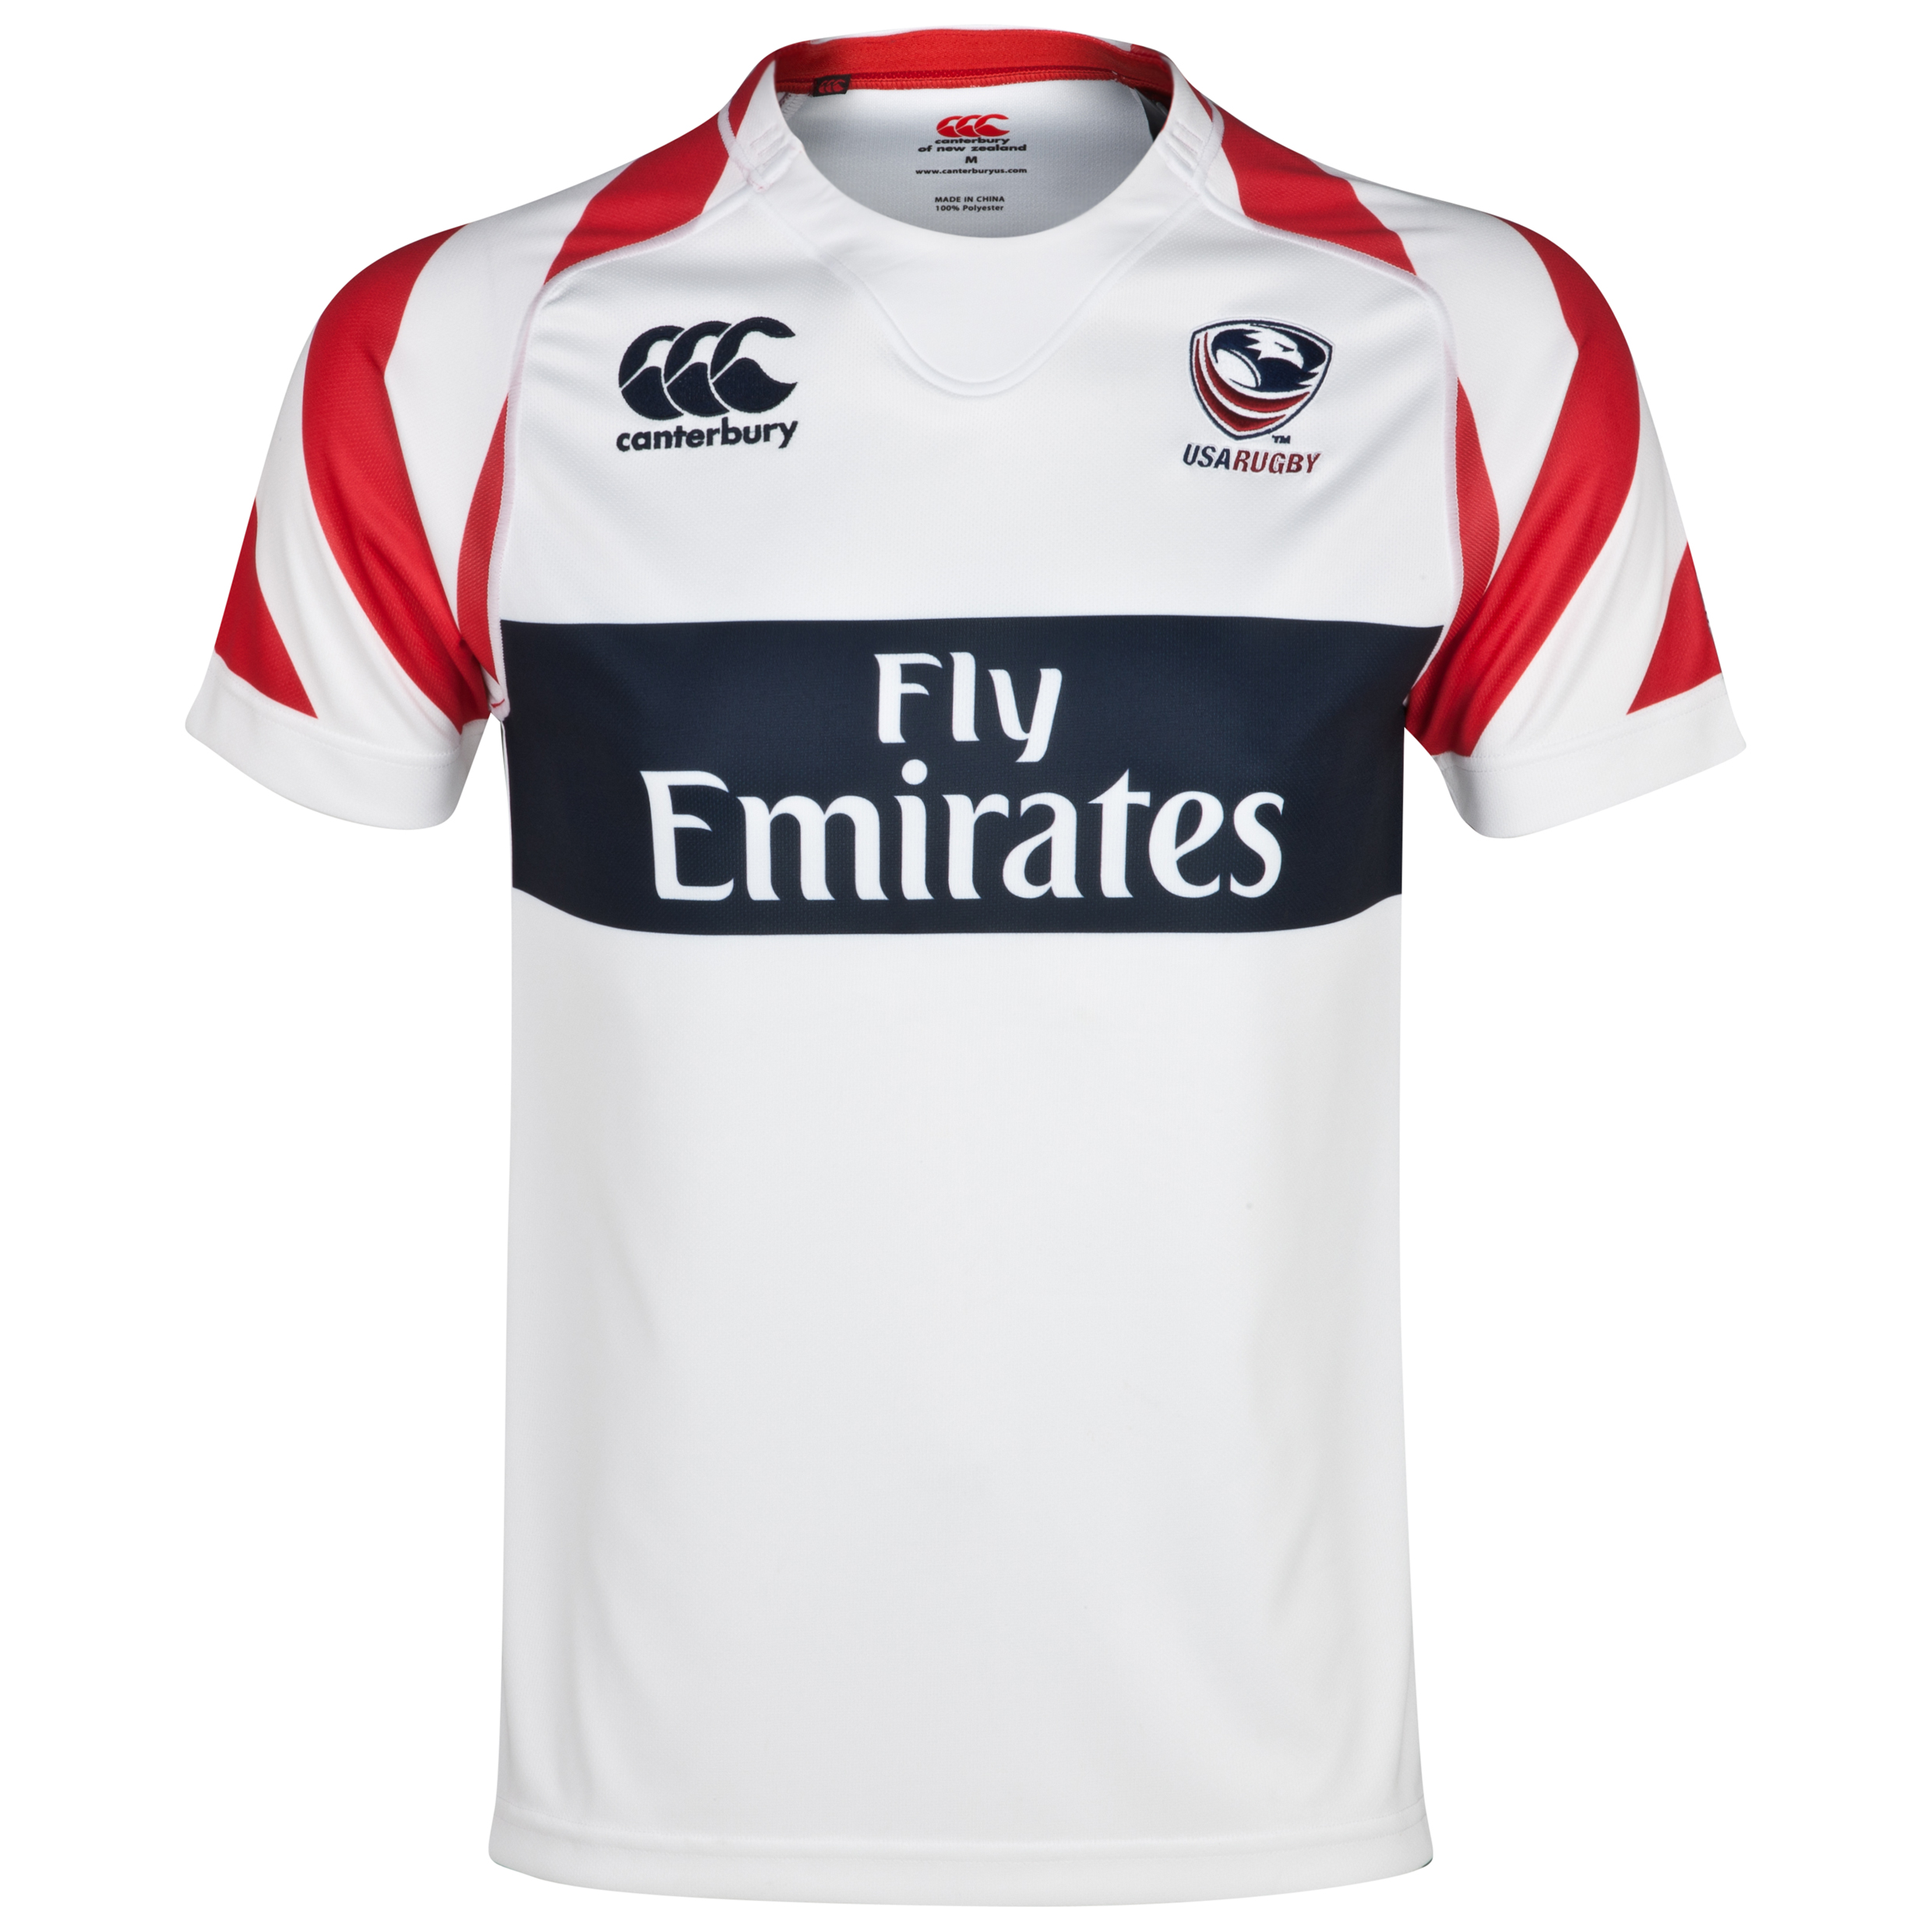 USA Eagles Home 7's Rugby Pro Shirt 2013/14